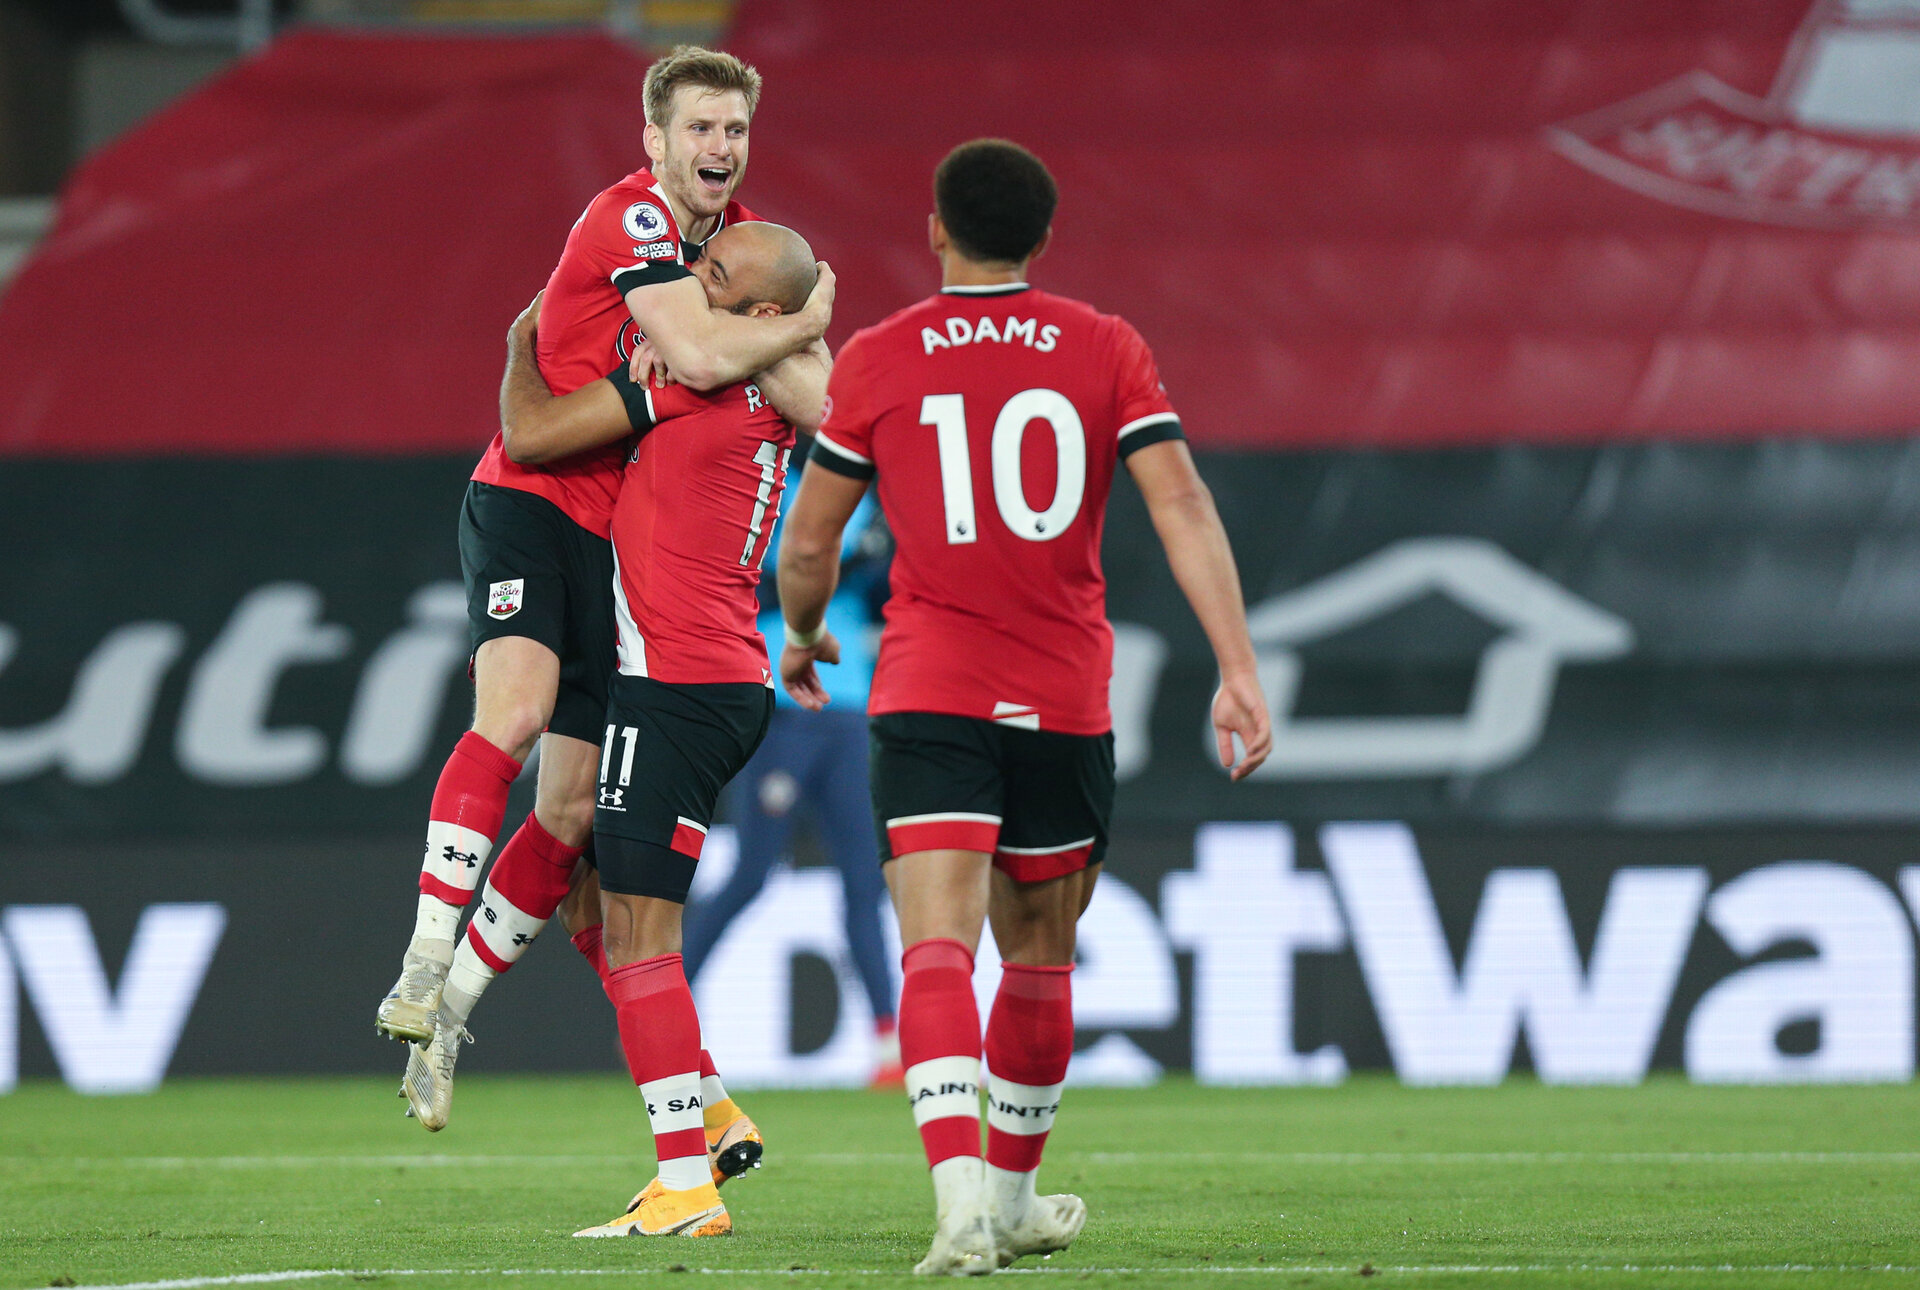 SOUTHAMPTON, ENGLAND - NOVEMBER 06: Stuart Armstrong's goal celebration  during the Premier League match between Southampton and Newcastle United at St Mary's Stadium on November 6, 2020 in Southampton, United Kingdom. Sporting stadiums around the UK remain under strict restrictions due to the Coronavirus Pandemic as Government social distancing laws prohibit fans inside venues resulting in games being played behind closed doors. (Photo by Chris Moorhouse/Southampton FC via Getty Images)